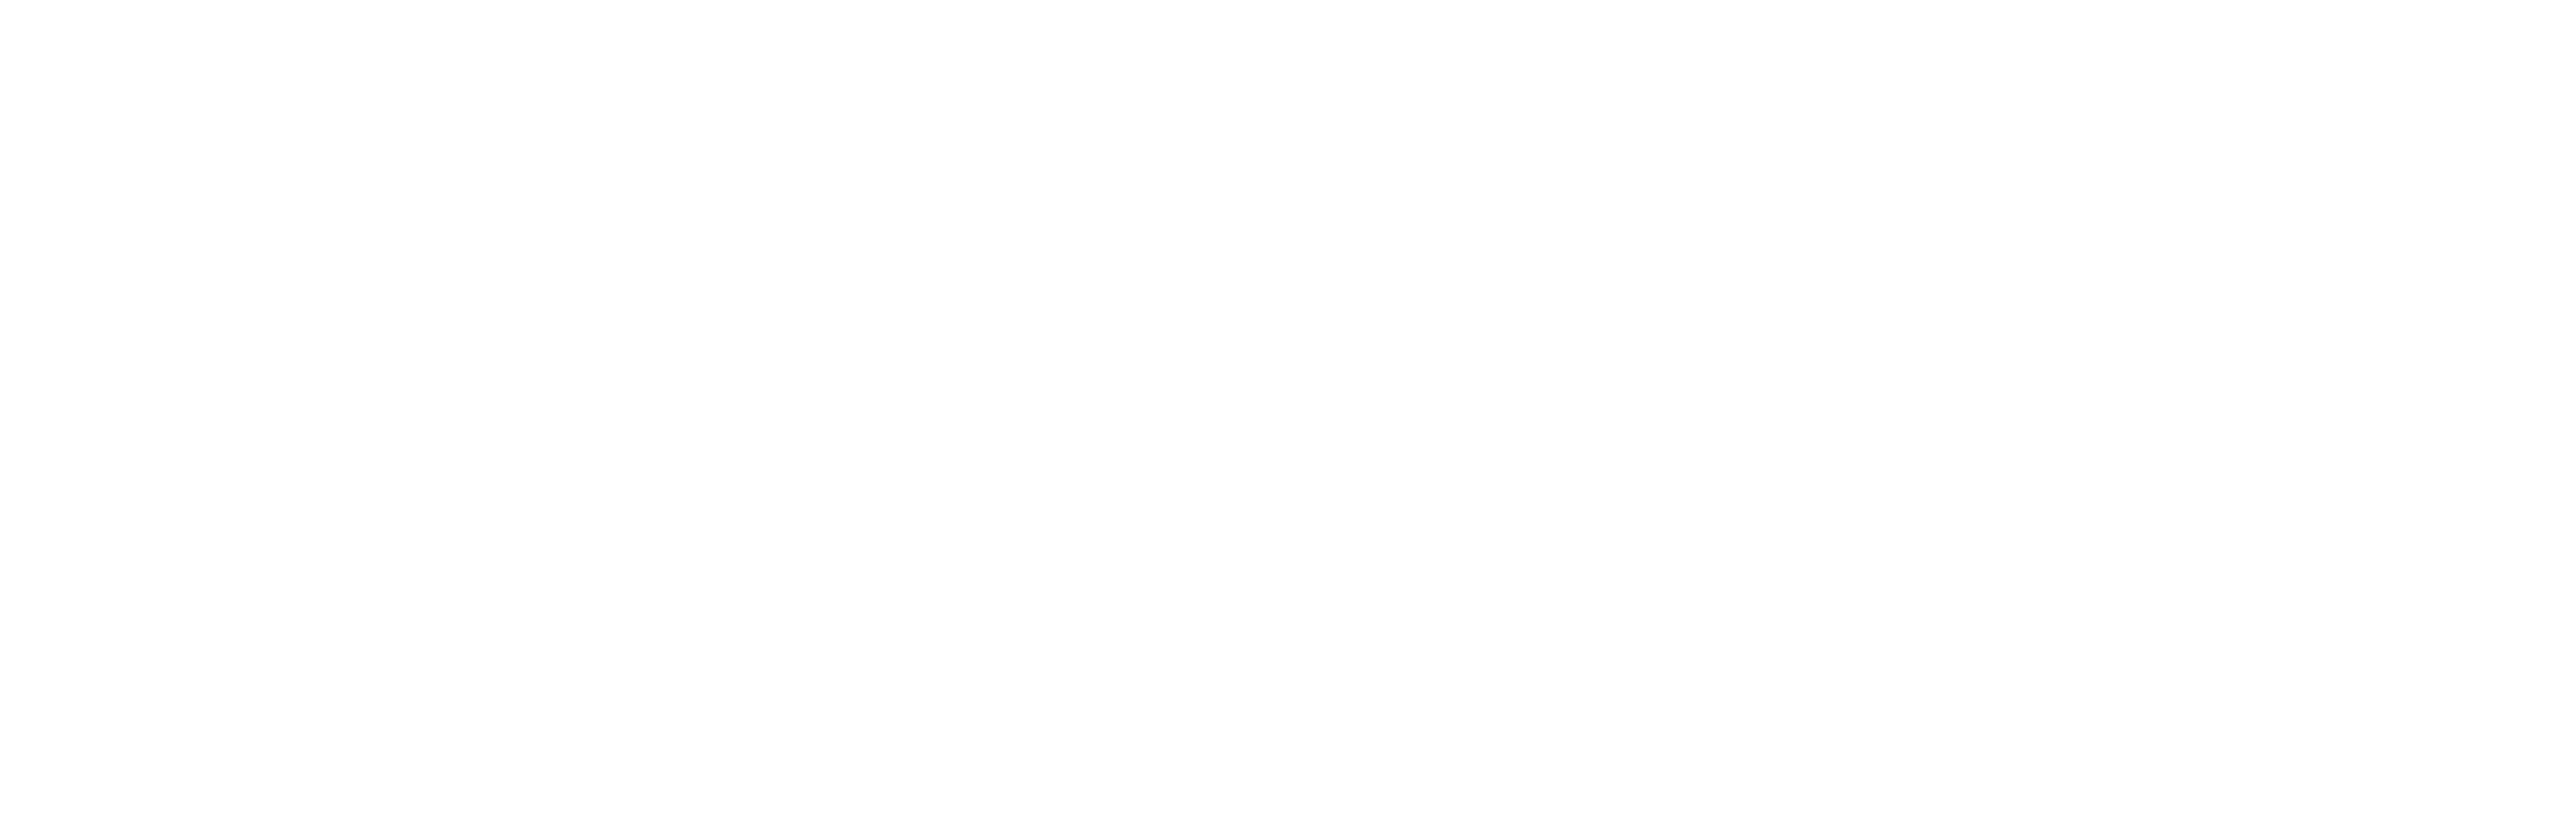 Blueprint Financial Services